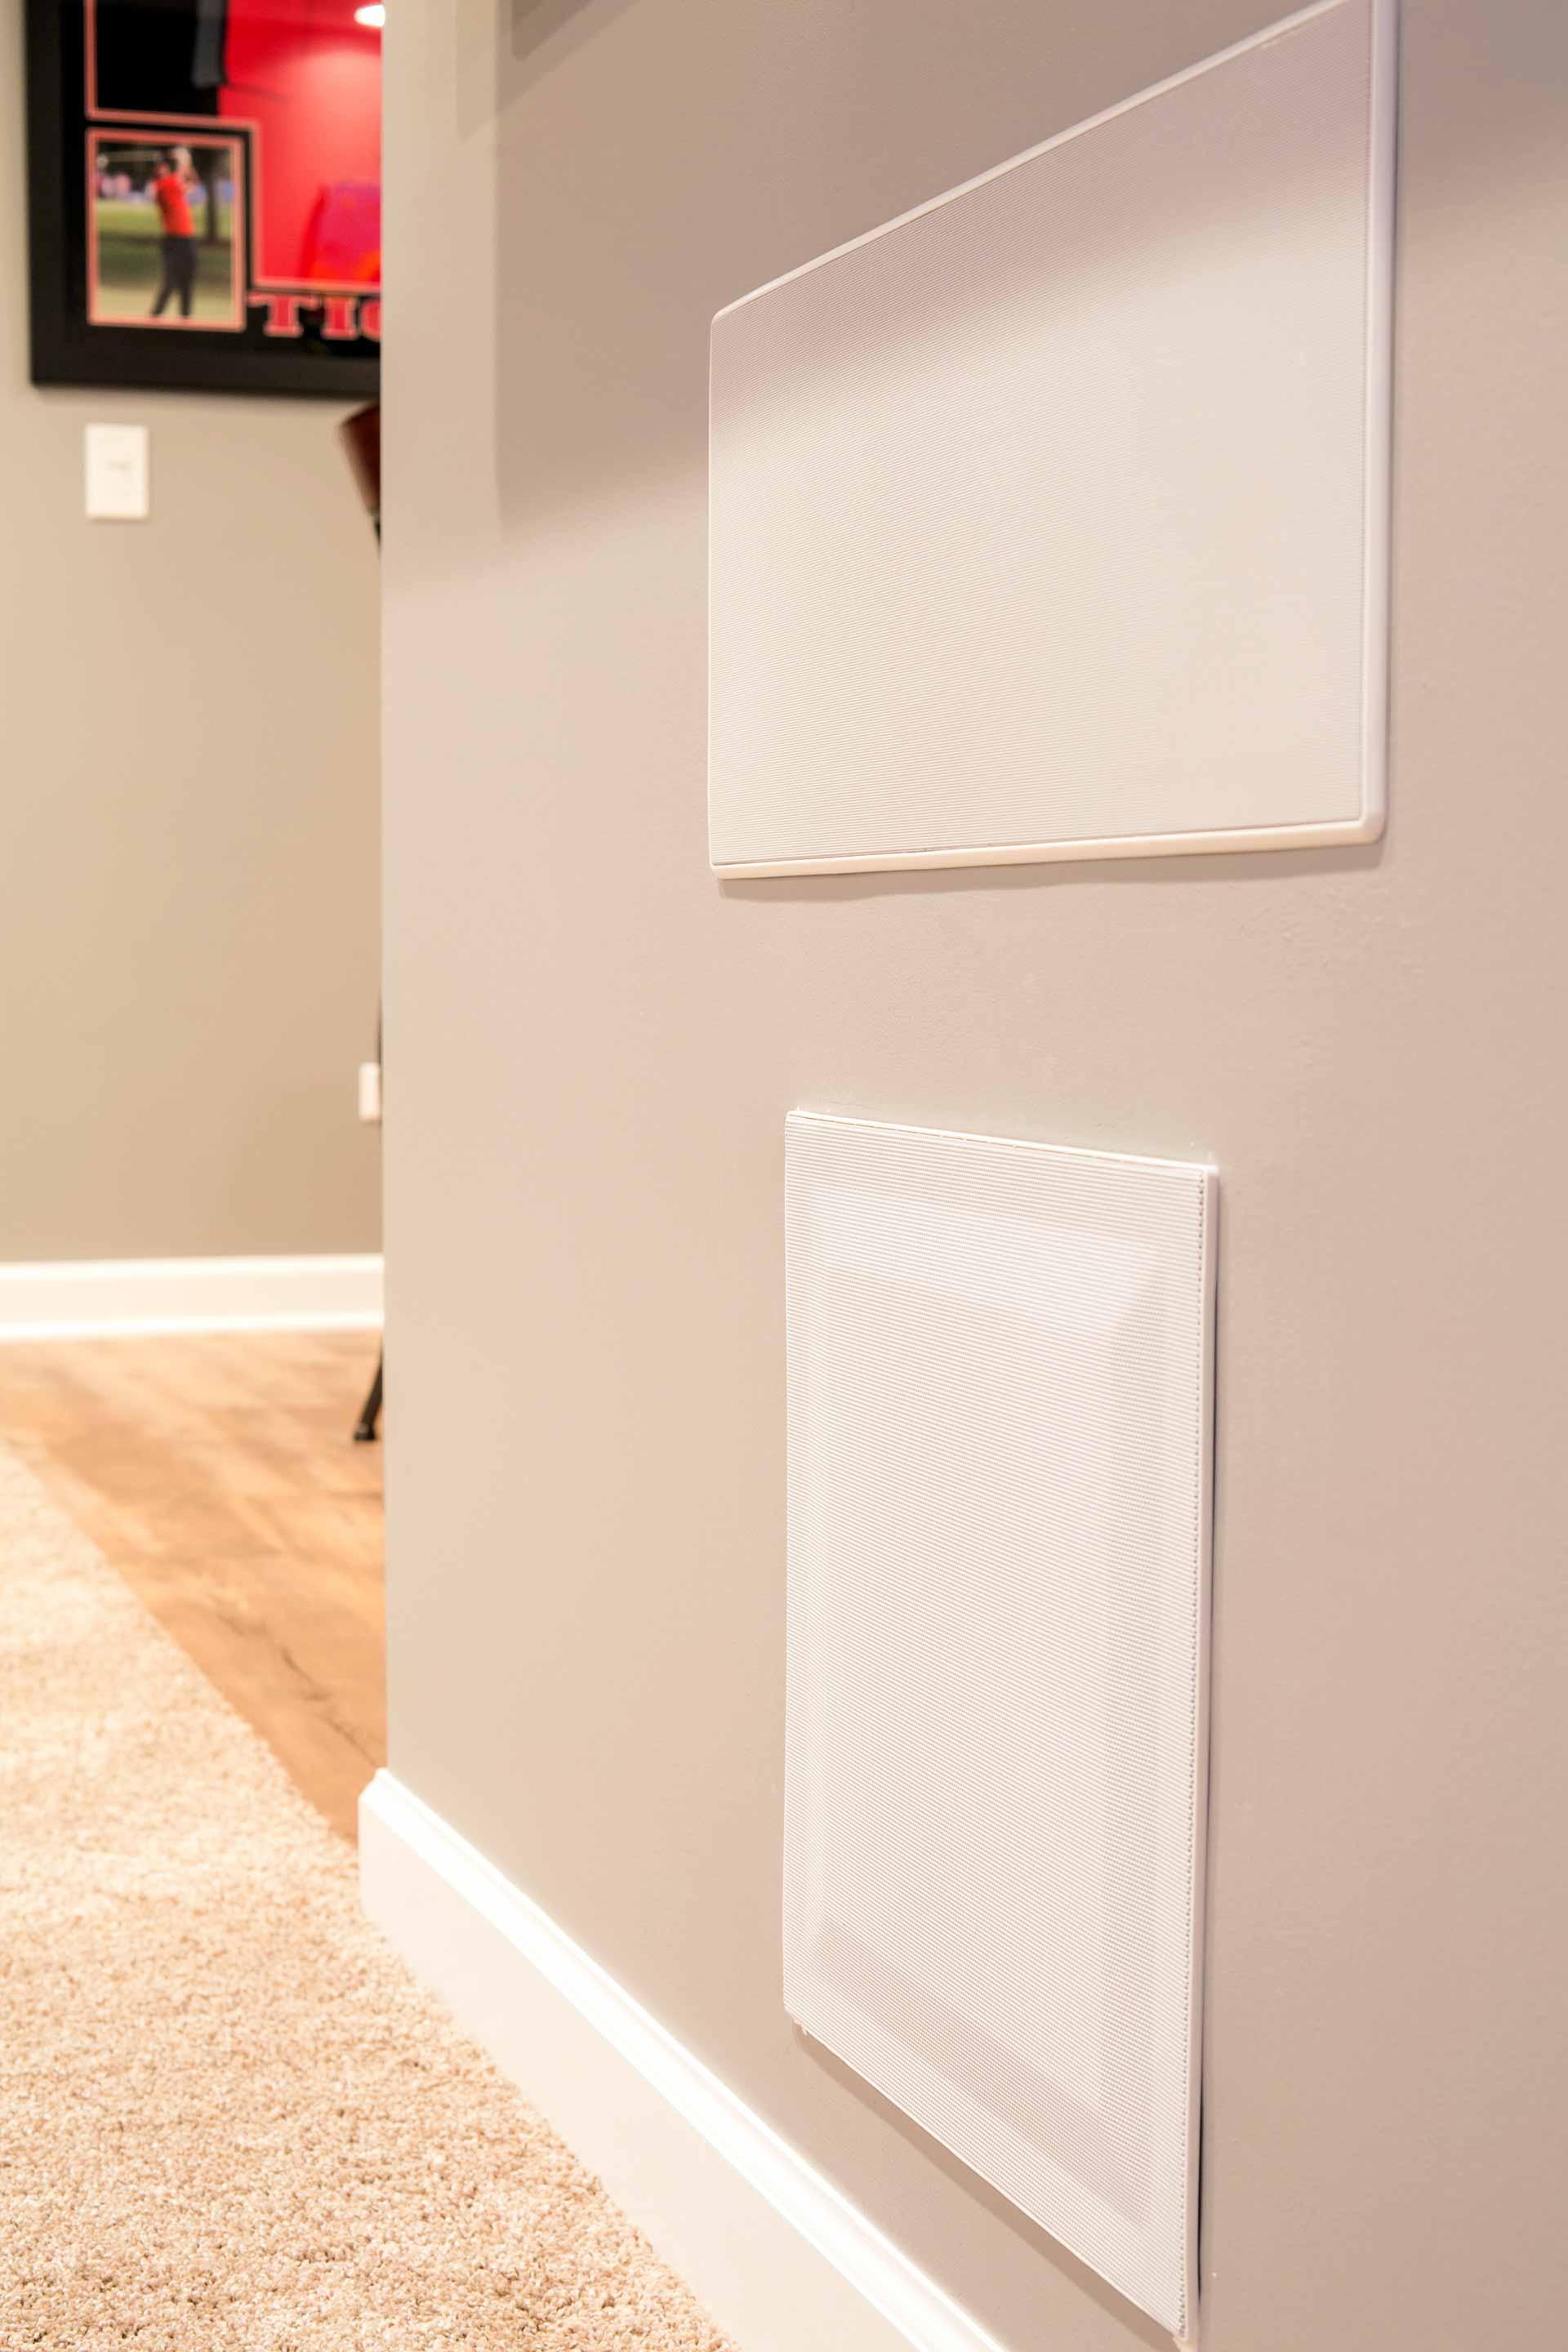 A Polk Audio 265-RT Vanishing In-Wall Loudspeaker with a Proficient Audio Systems IWS105 Inwall Subwoofer